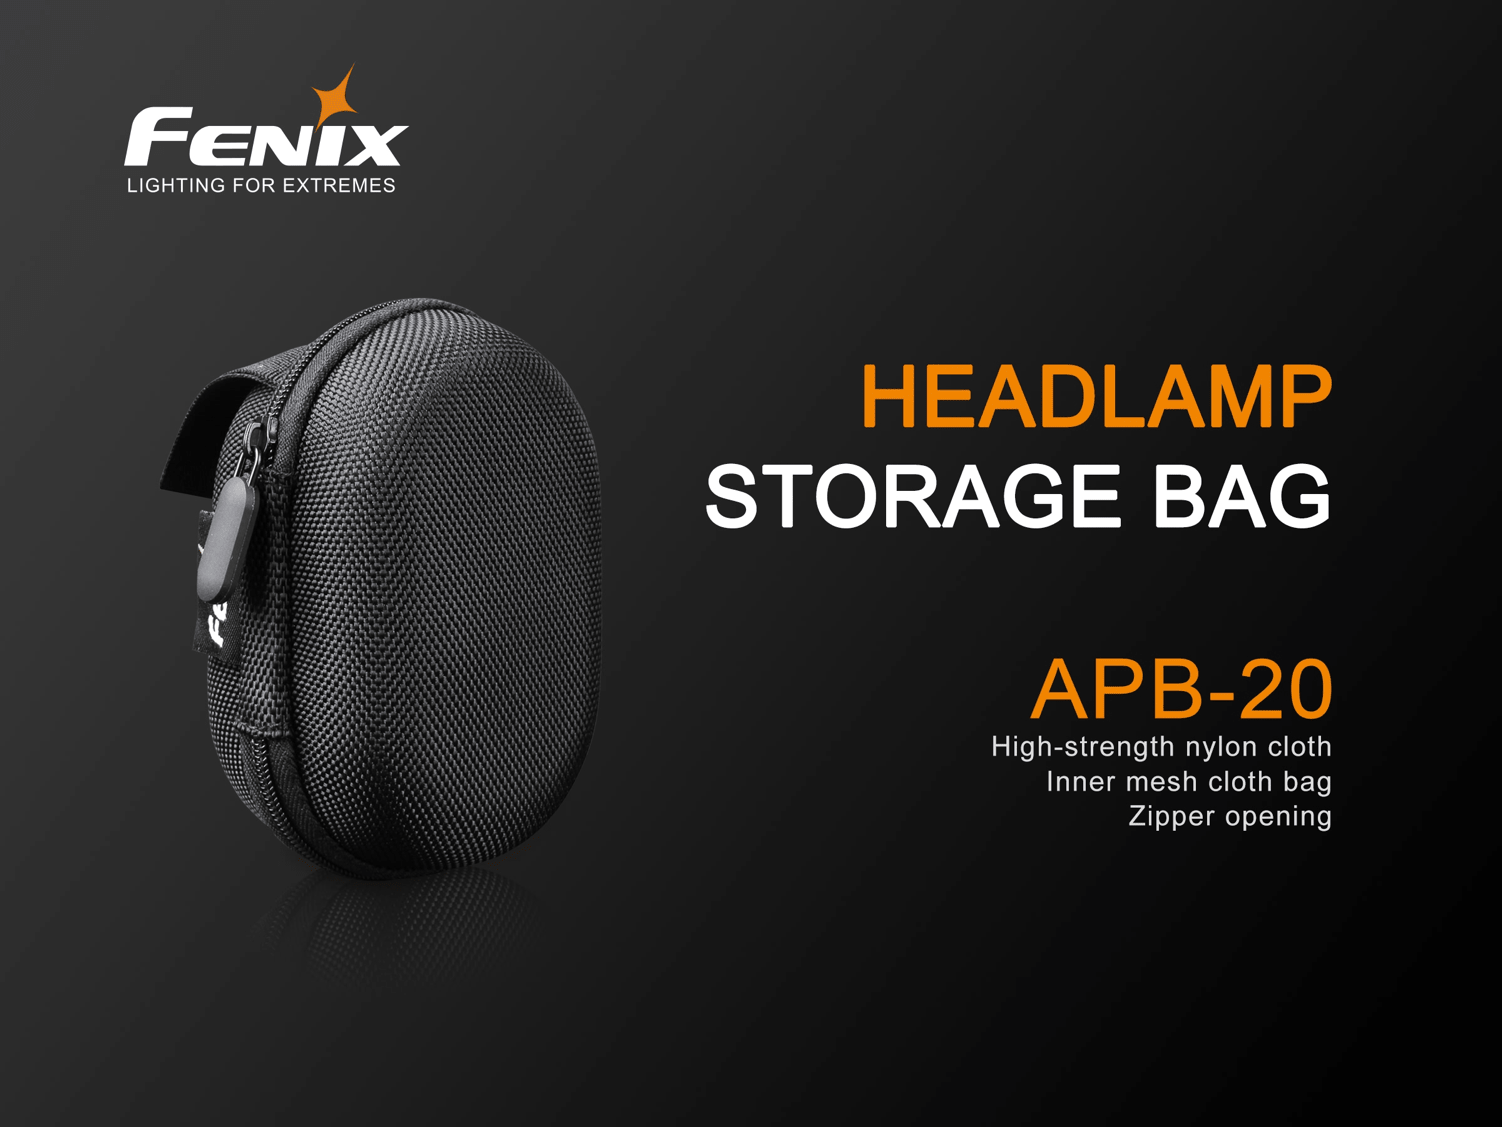 Fenix APB-20 Headlamp Bag / Pouch for Storage or Outdoor Travels, Headlamp storage bag, Compact Tough Pouch